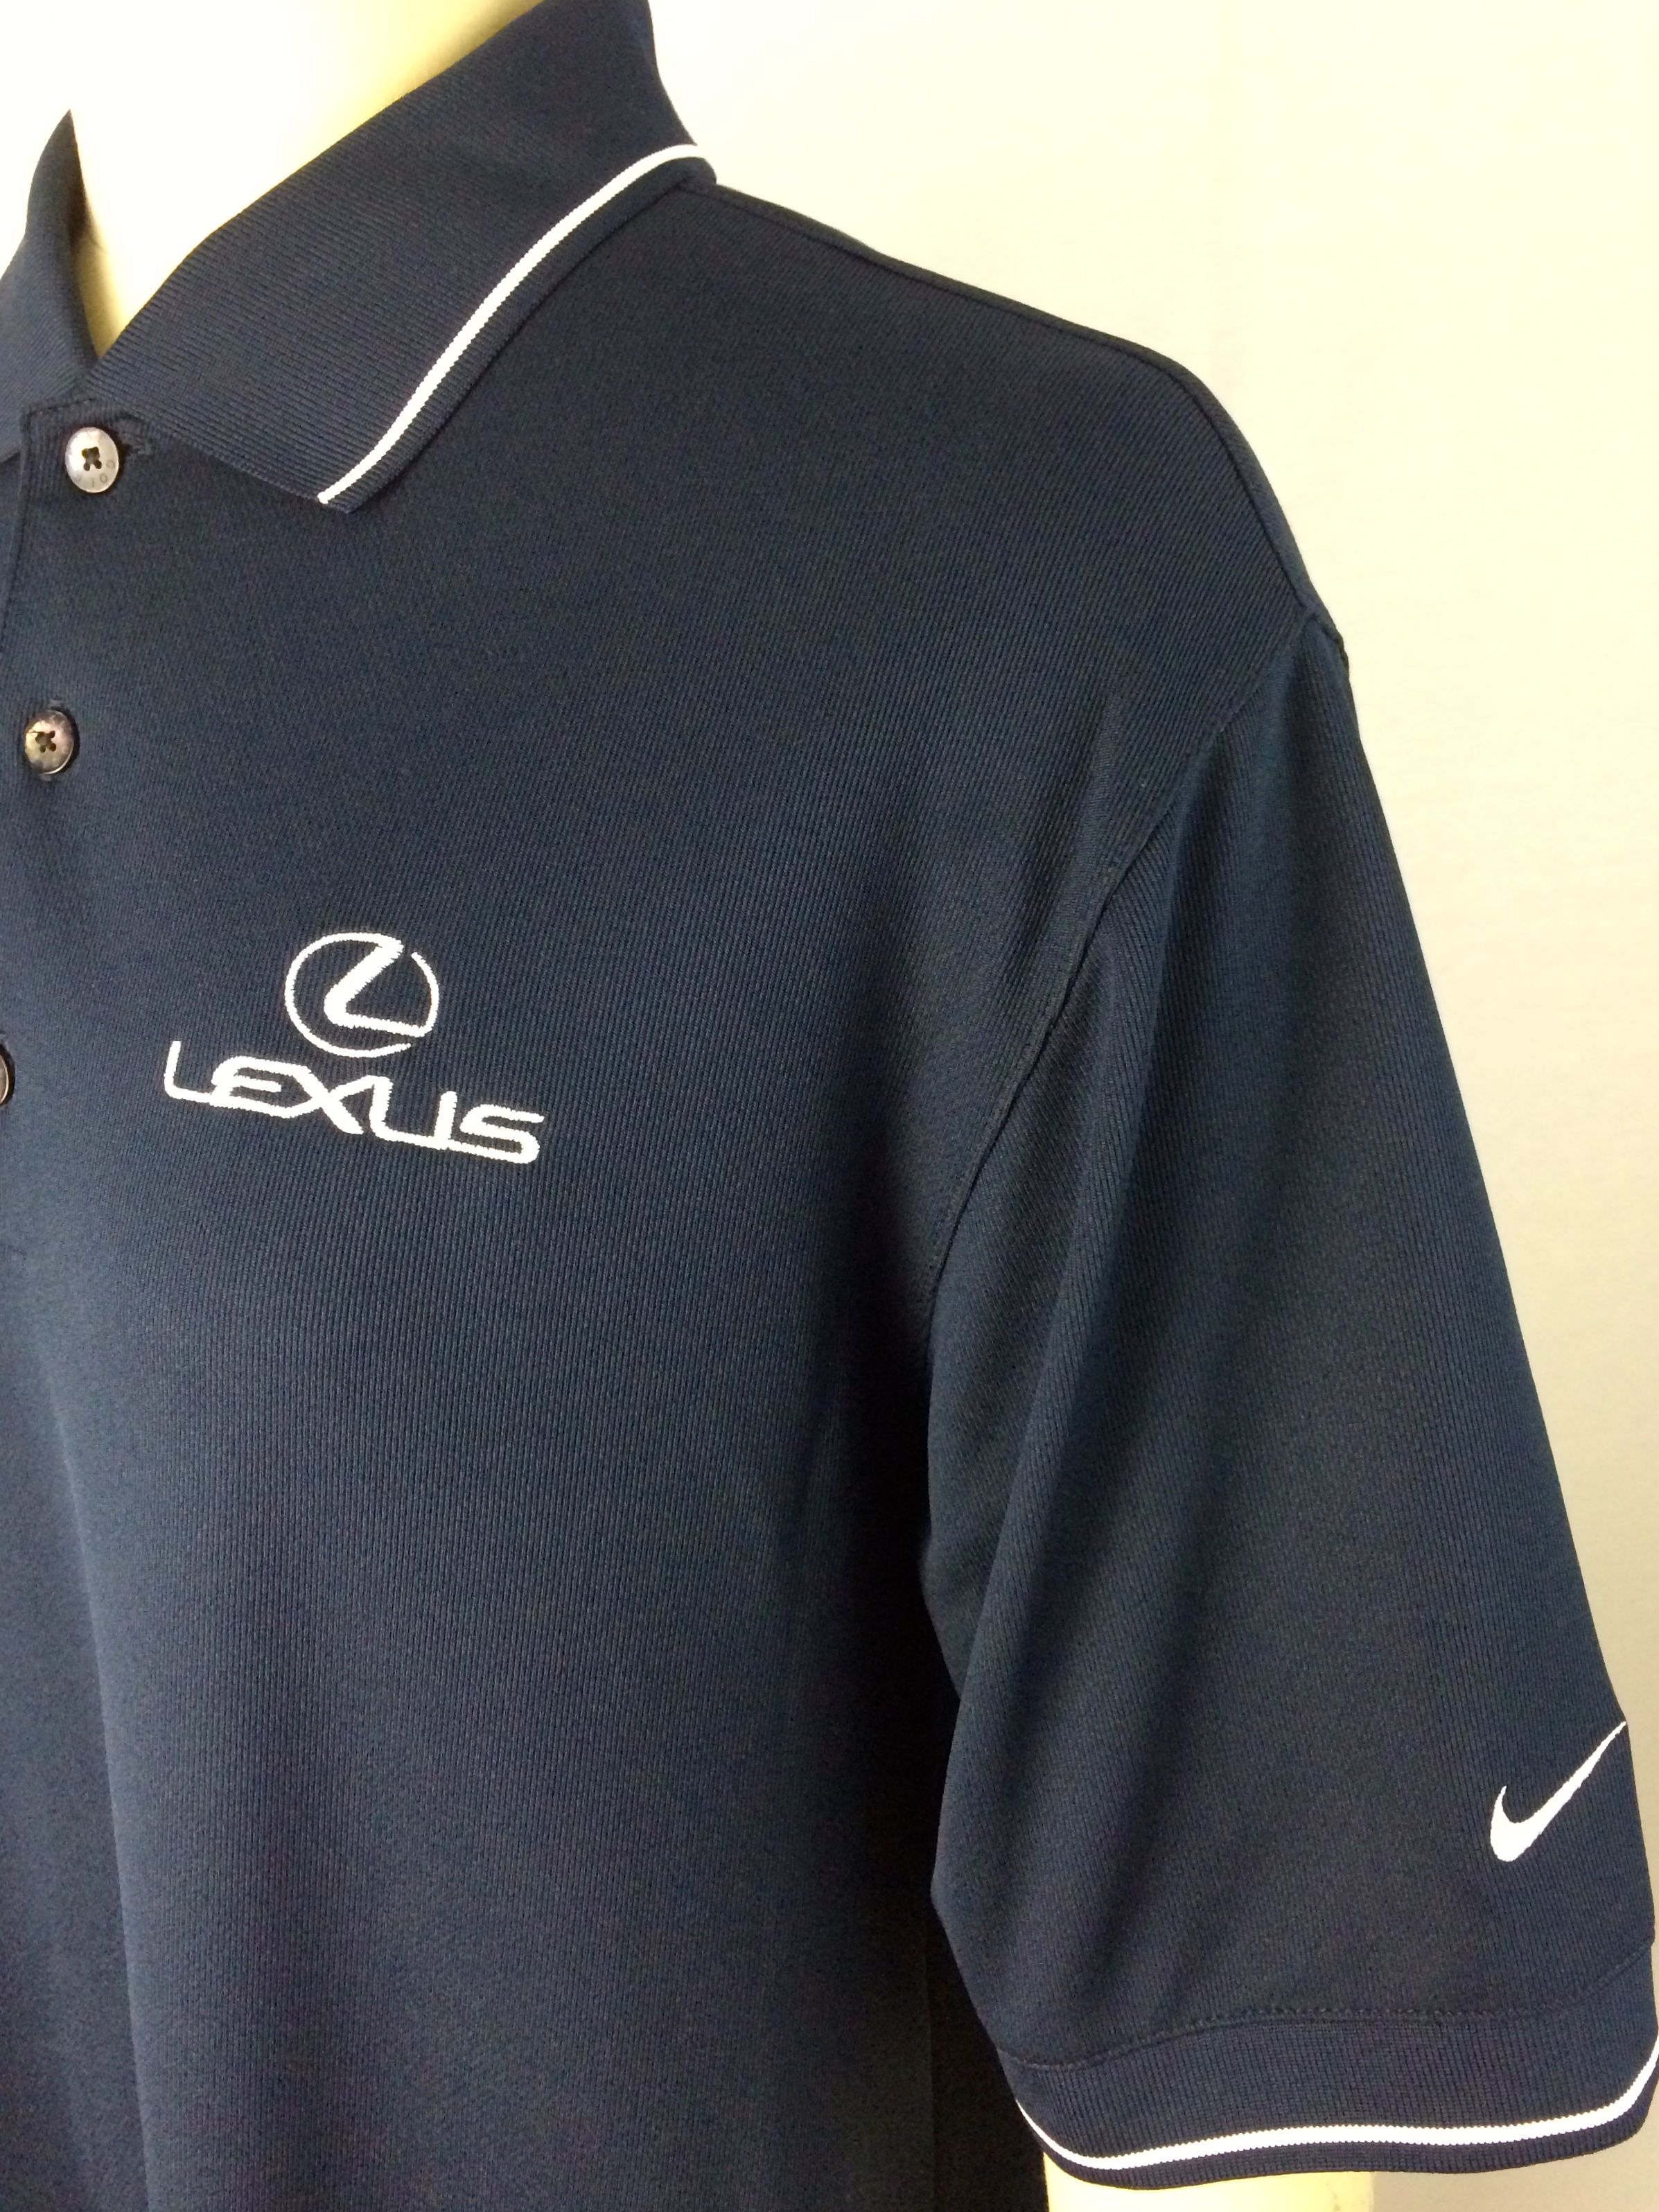 Lead Apparel Works With Lexus On A Custom Embroidered Nike Polo